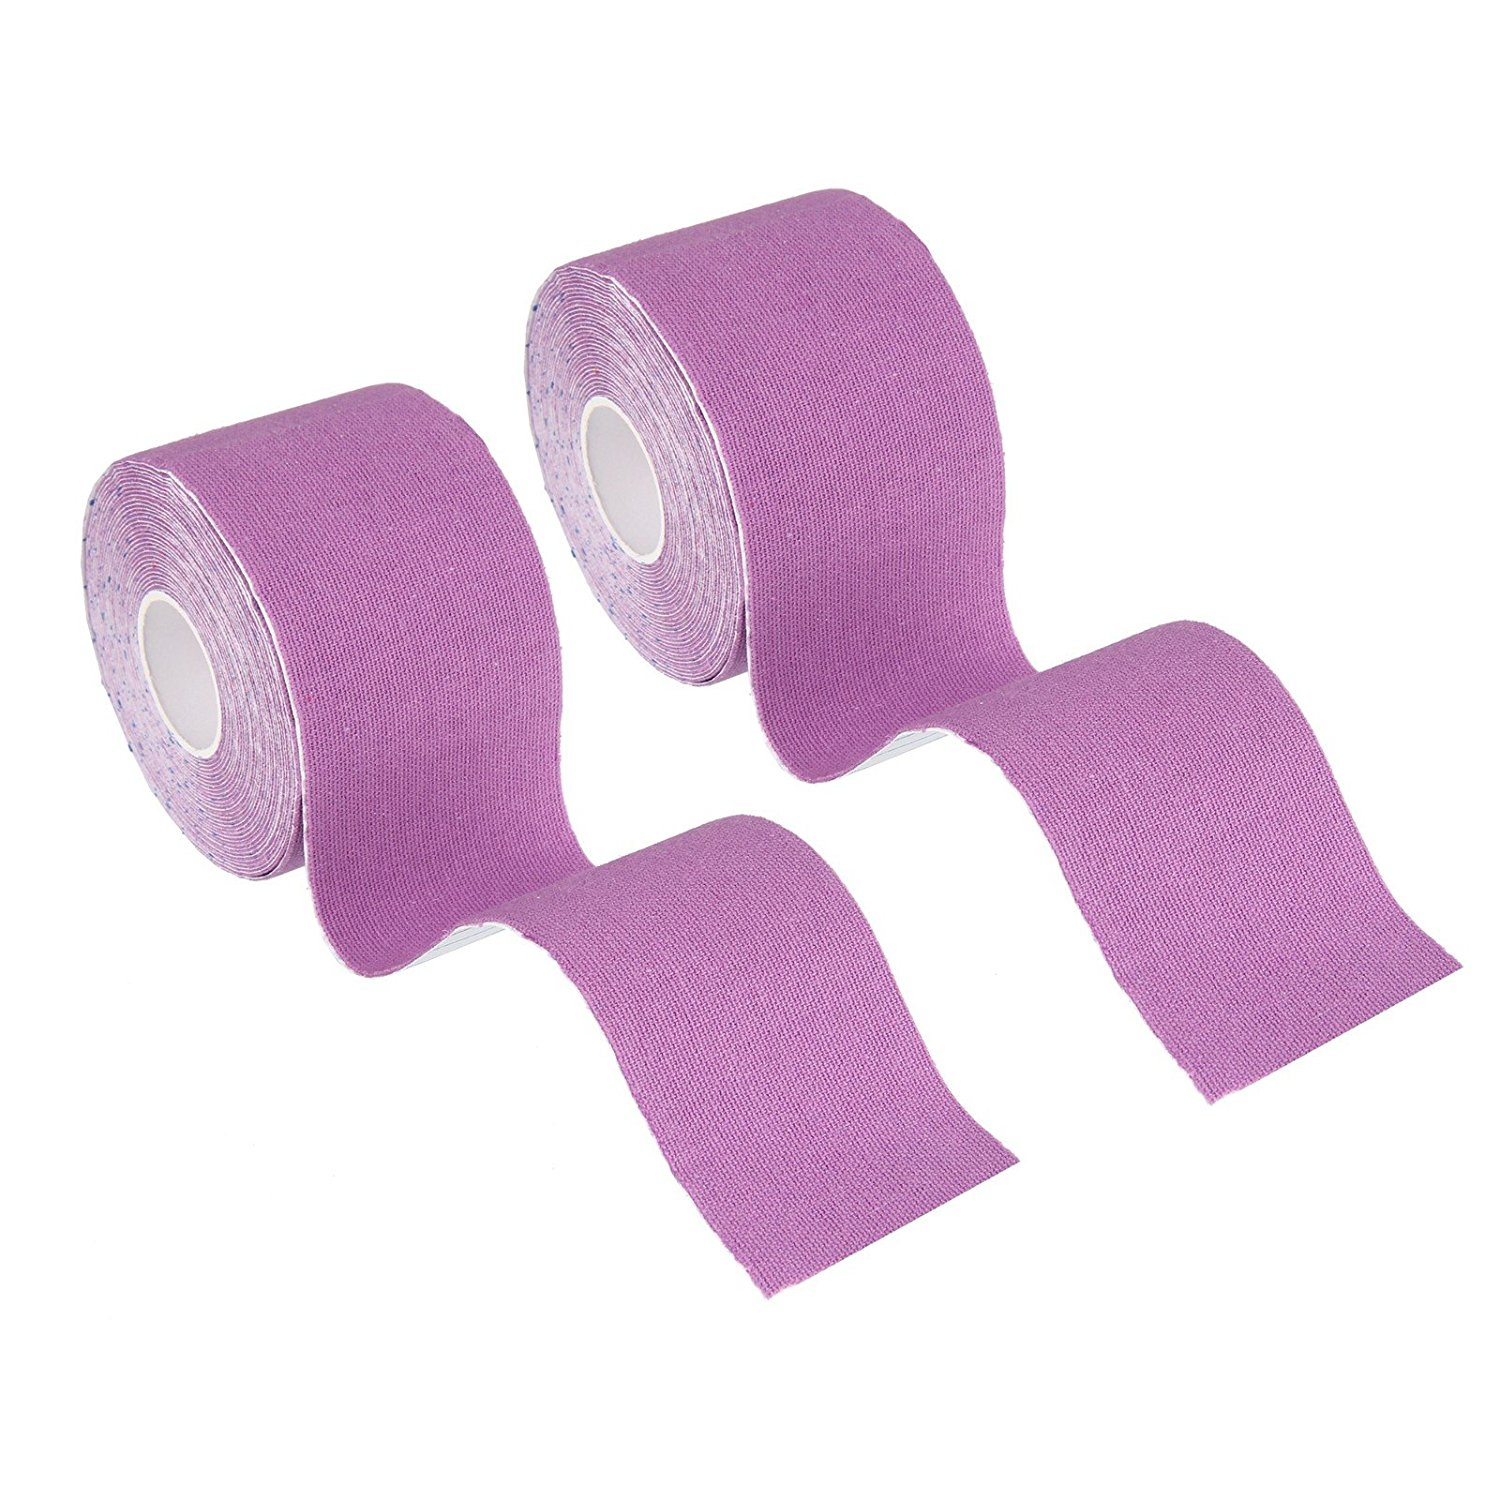 "Beauty7 Kinesiology Adhesive Tape 2 Rolls Uncut Cotton Elastic Breathable Waterproof Muscle Support for Athletic Sports Aid Recovery and Physio Therapy Knee Shoulder Elbow (Purple, 1""W x 16.4'L)"